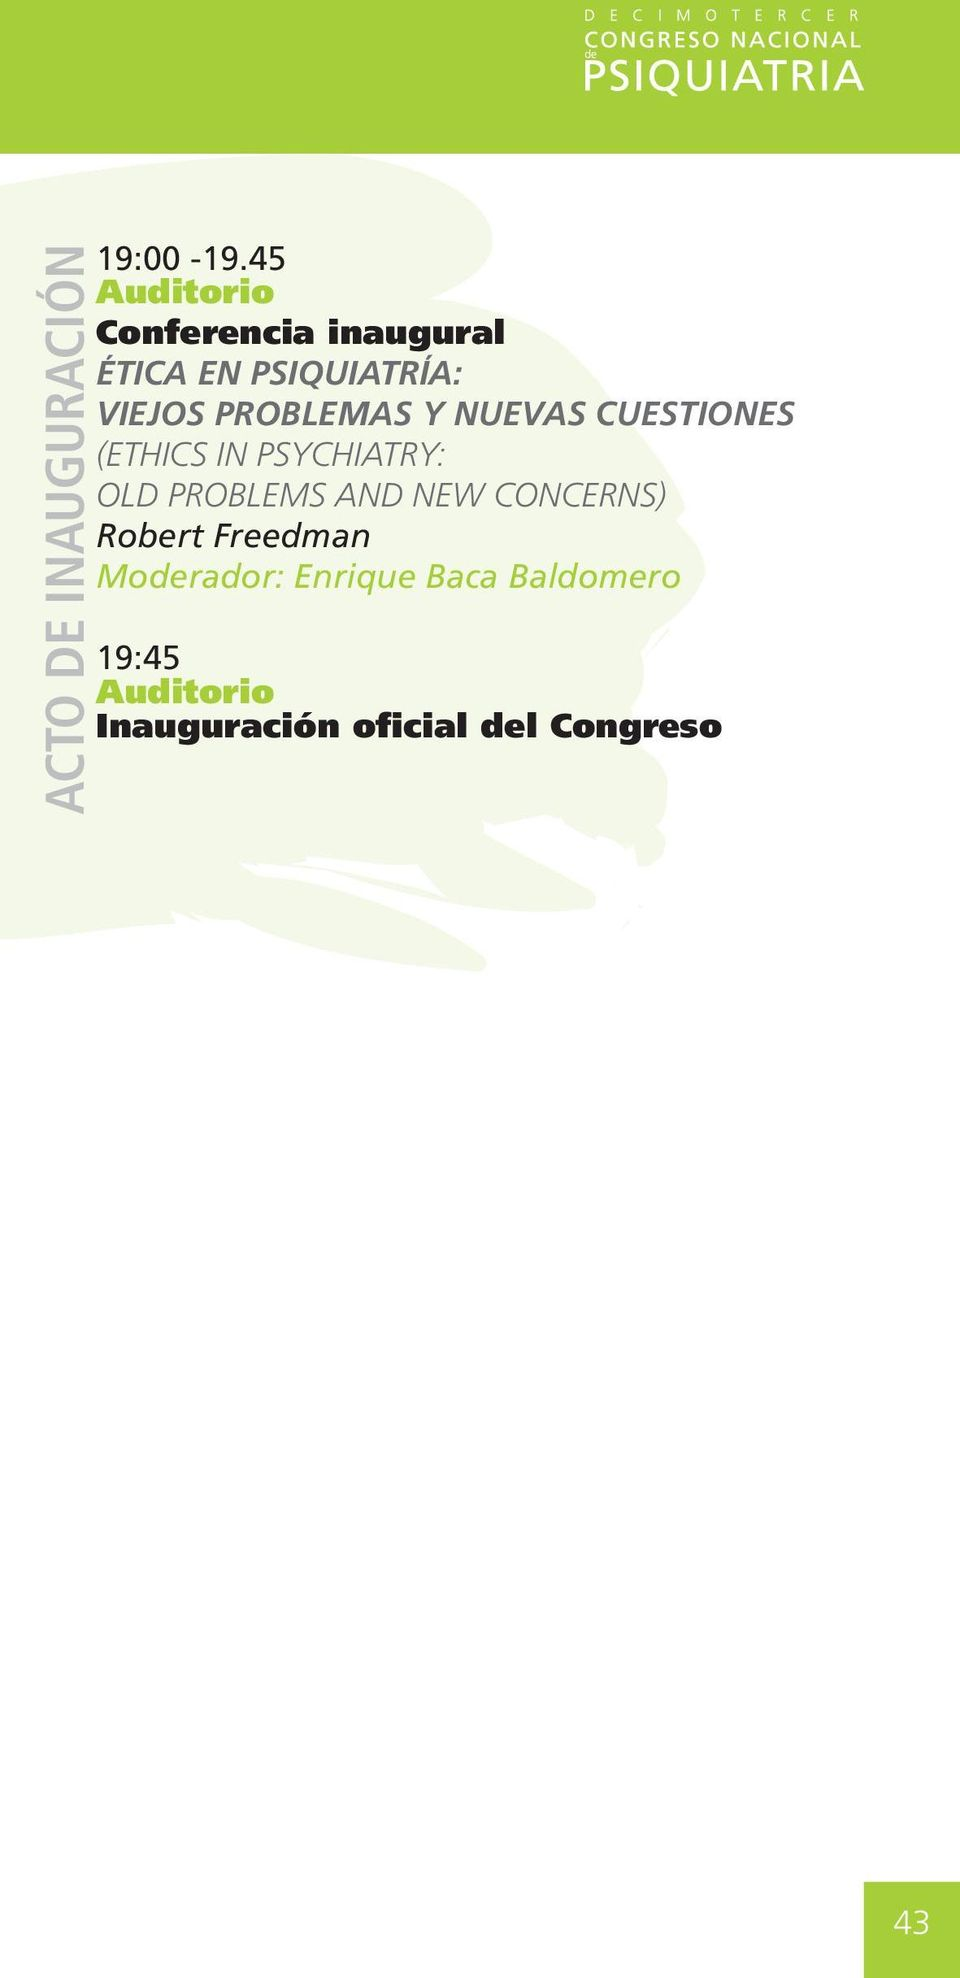 PROBLEMAS Y NUEVAS CUESTIONES (Ethics in Psychiatry: Old Problems and